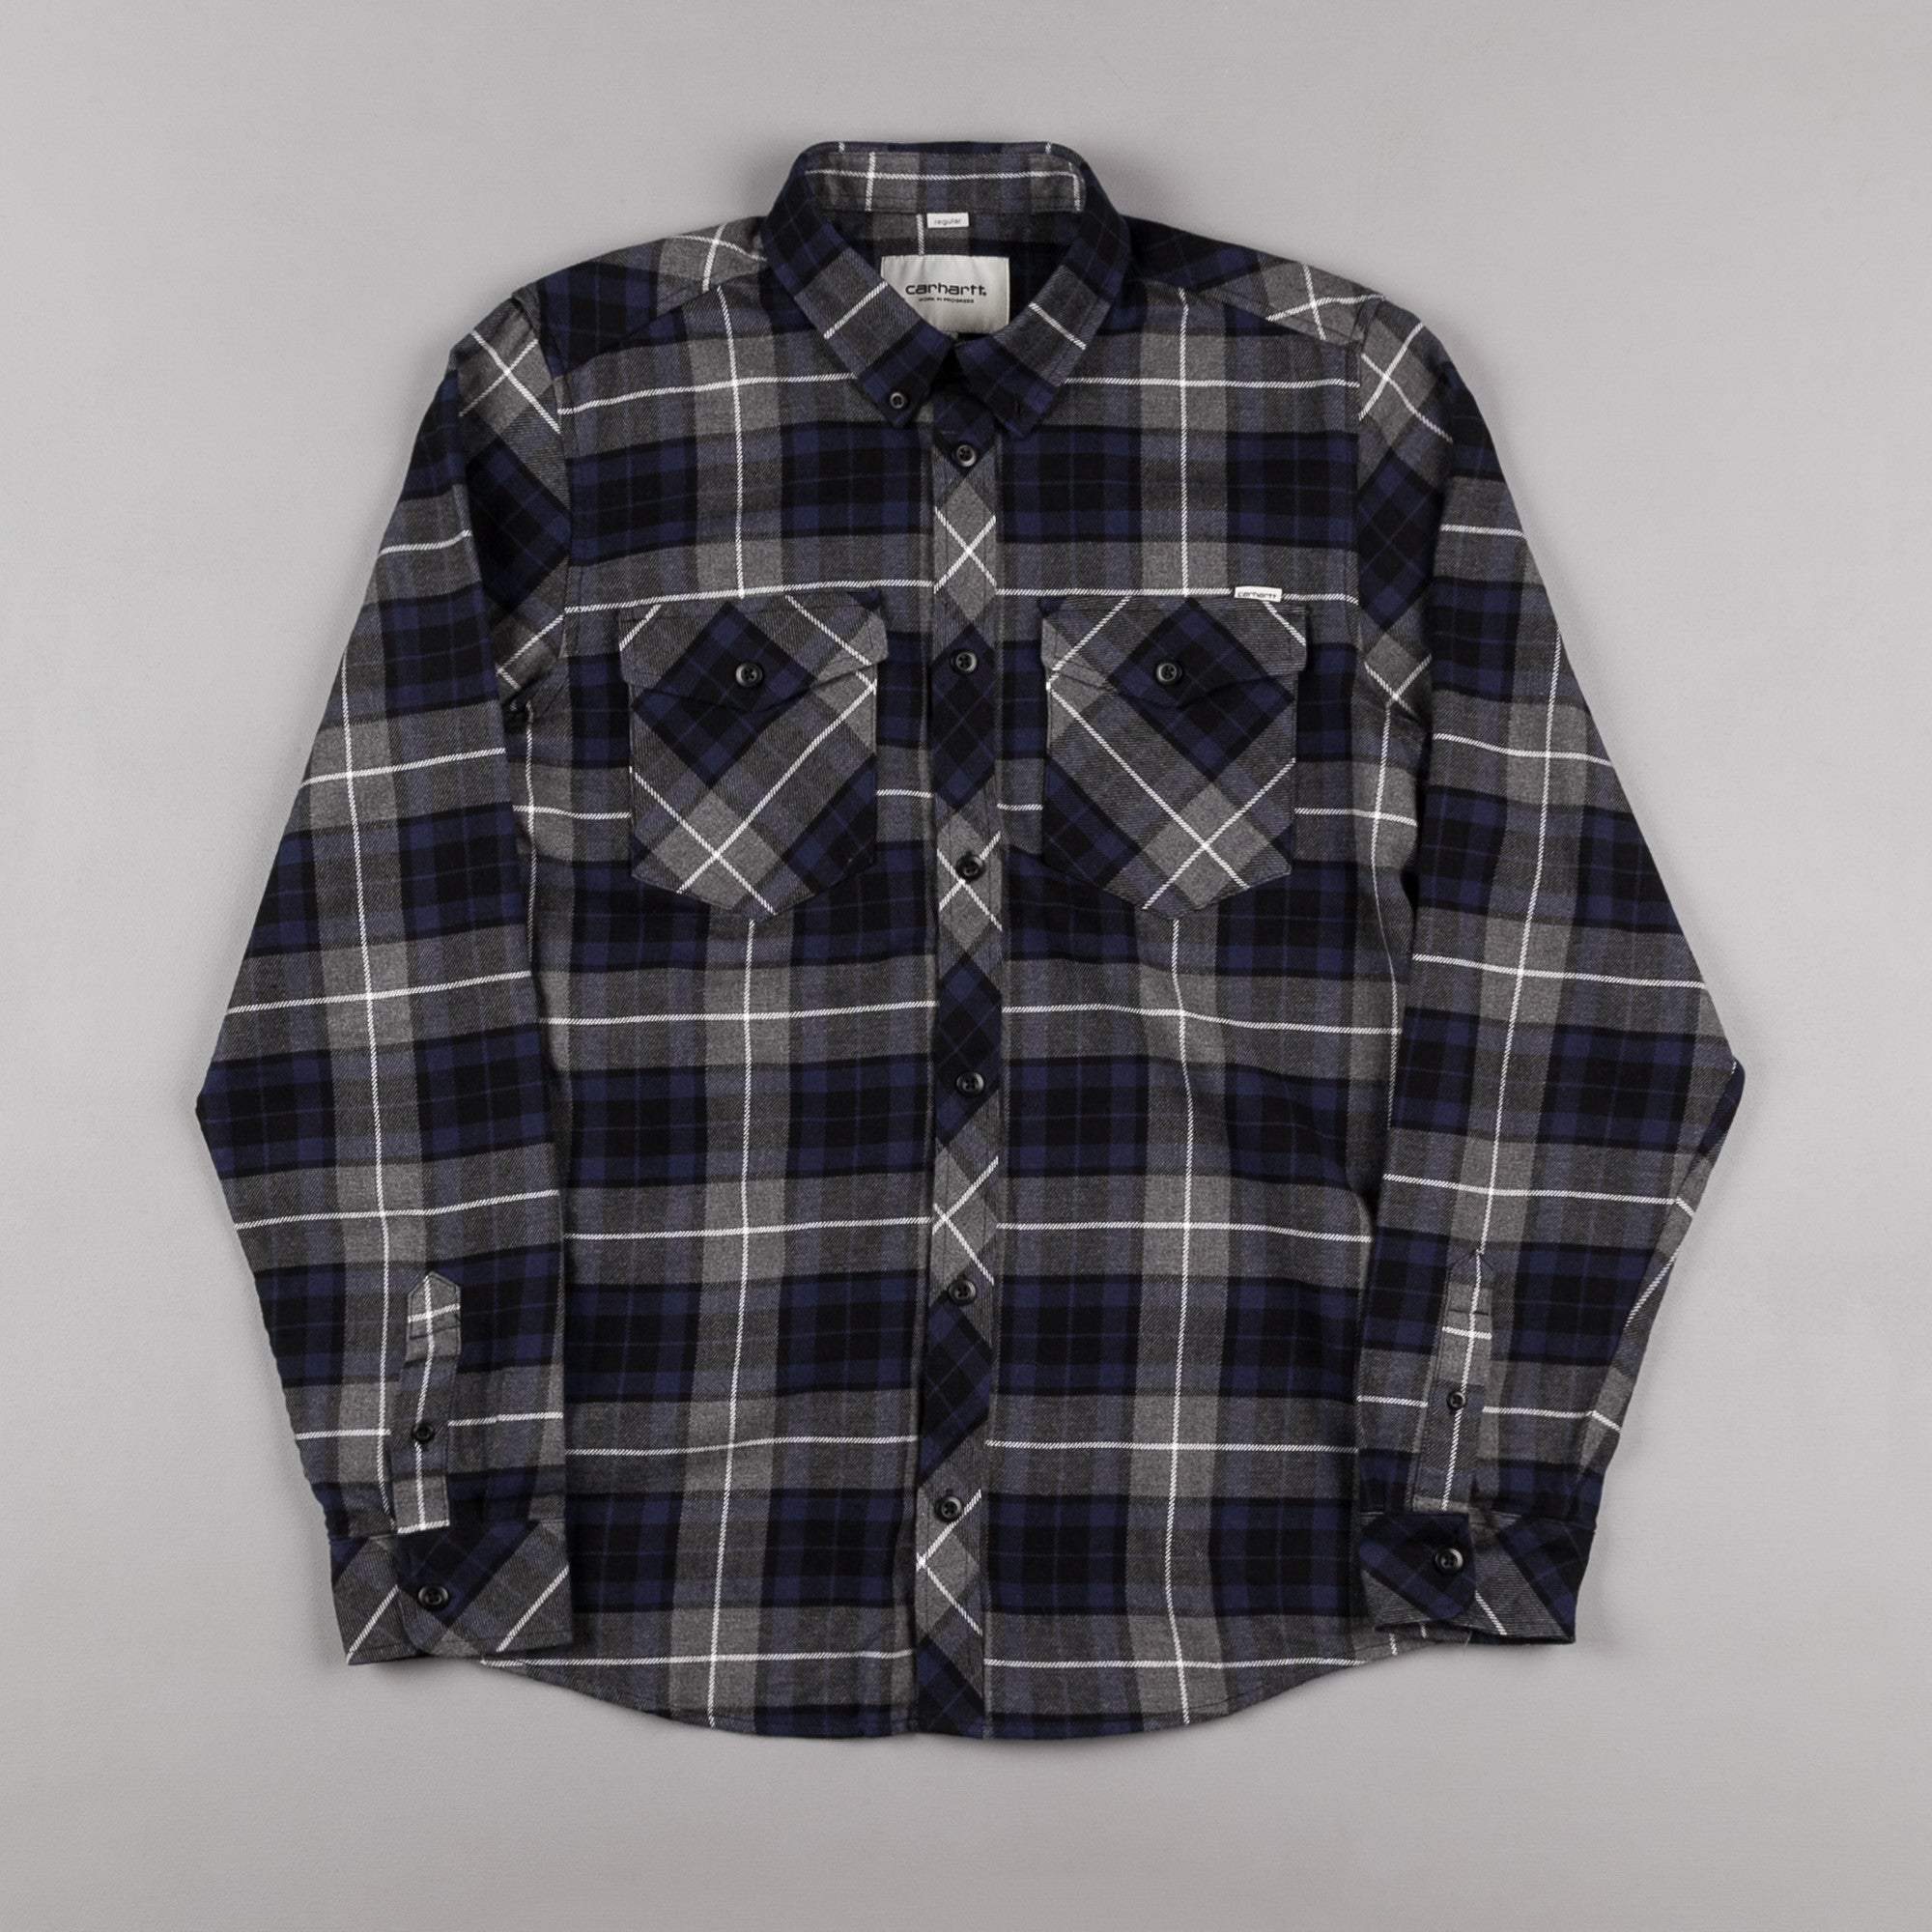 Carhartt Tatum Long Sleeve Shirt - Blue